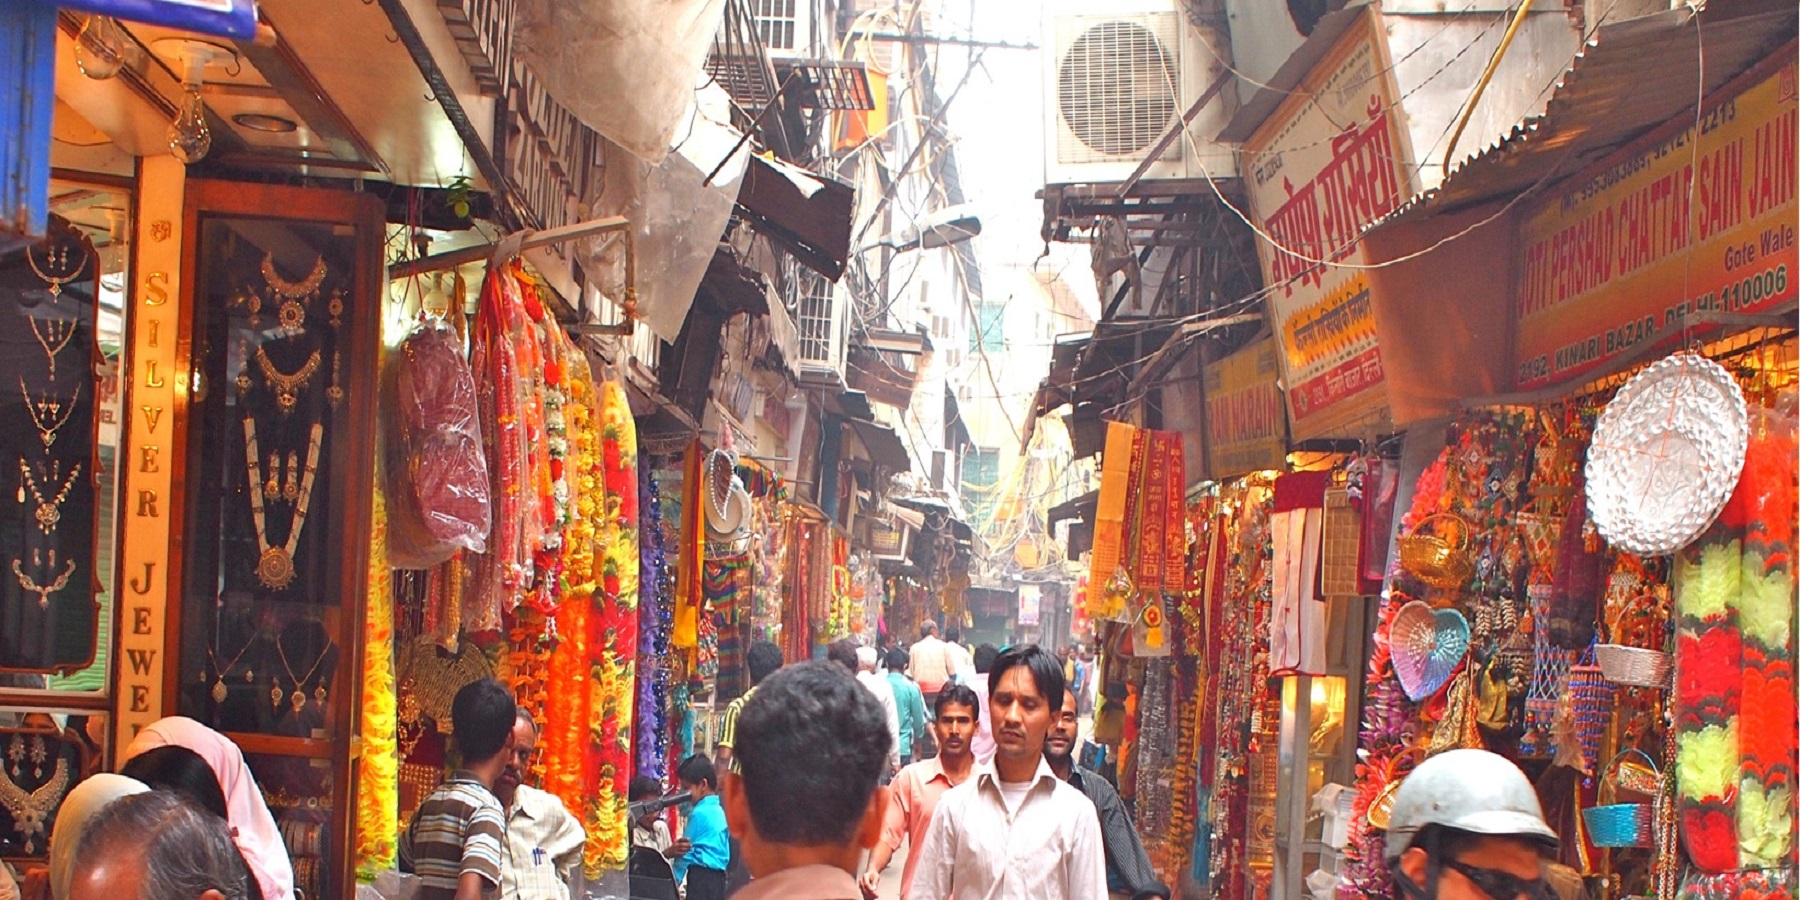 Delhi Shopping and Food Tasting Experience (Guided Full Day City Tour)